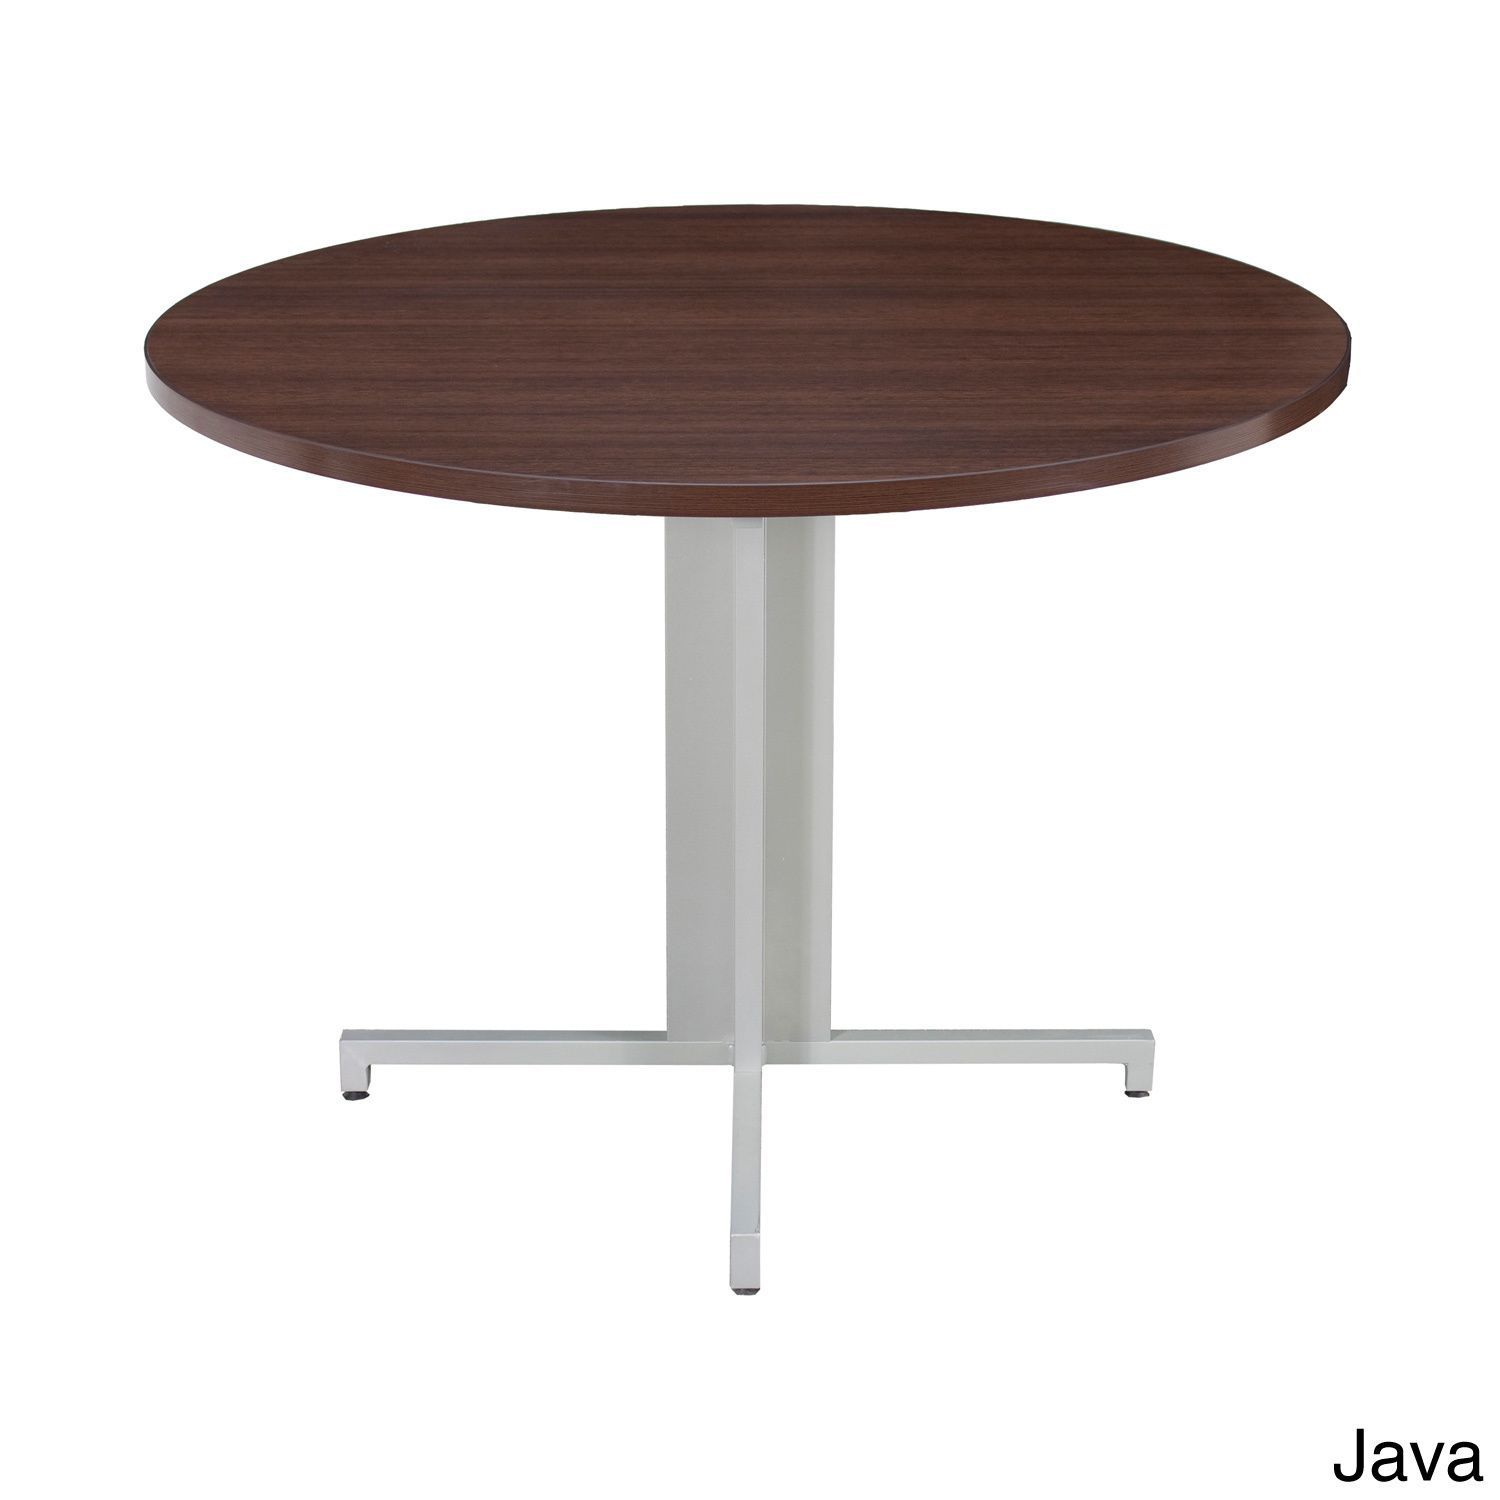 Regency Seating Inch Round Conference Table Products - 36 inch round conference table